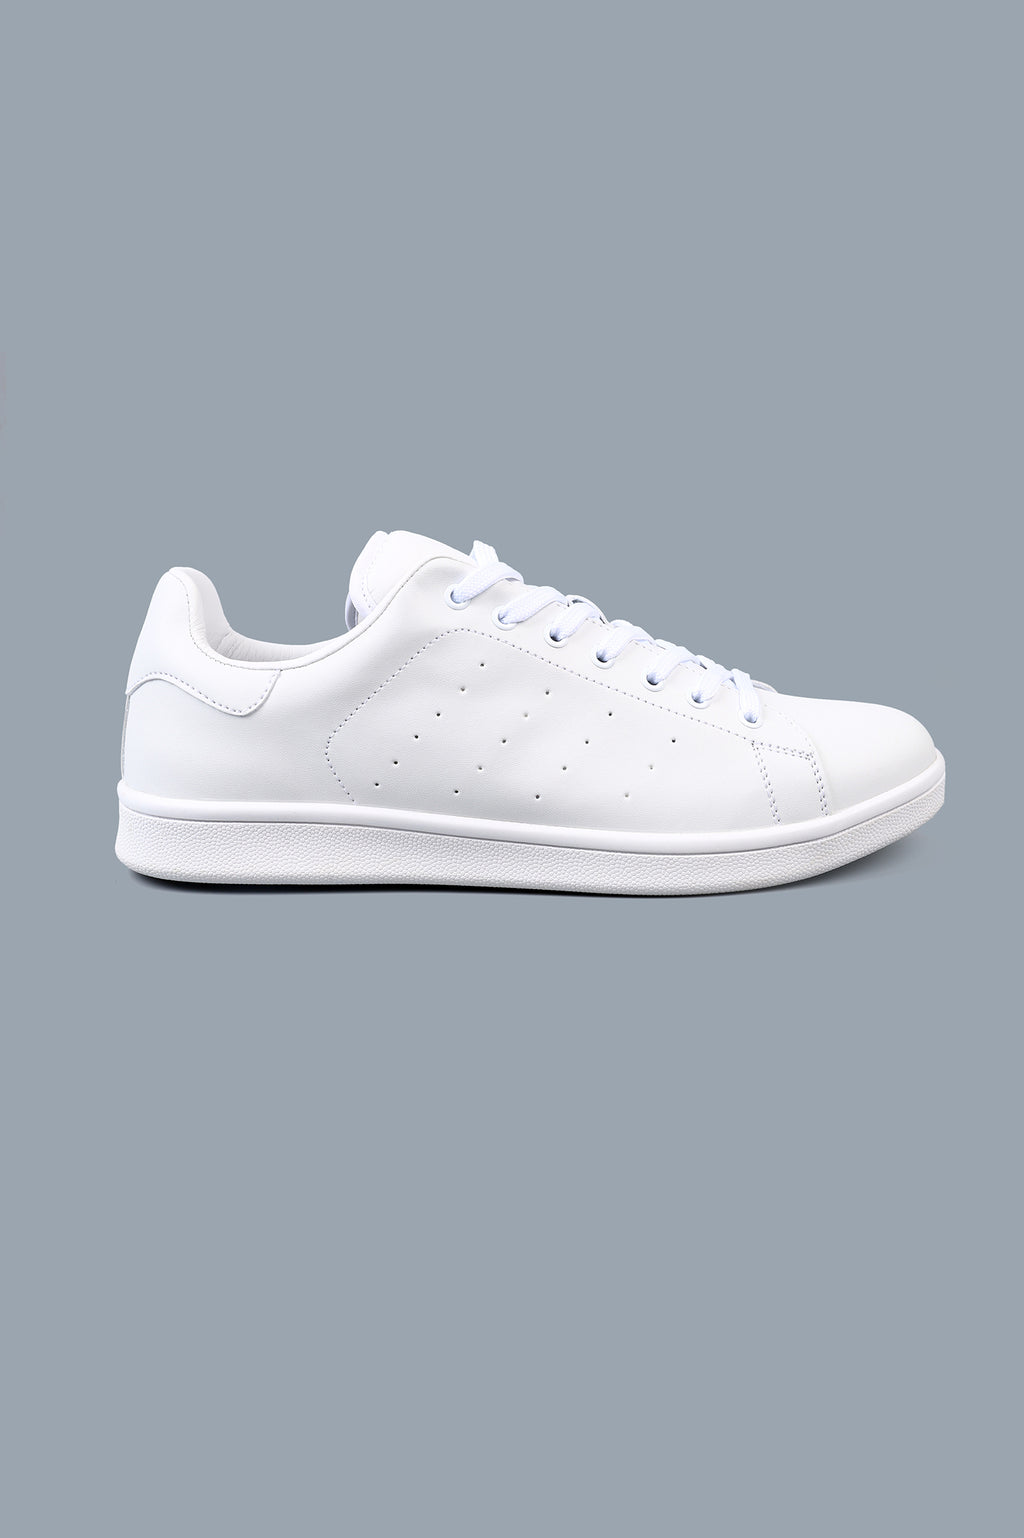 BASIC KICKS-WHITE